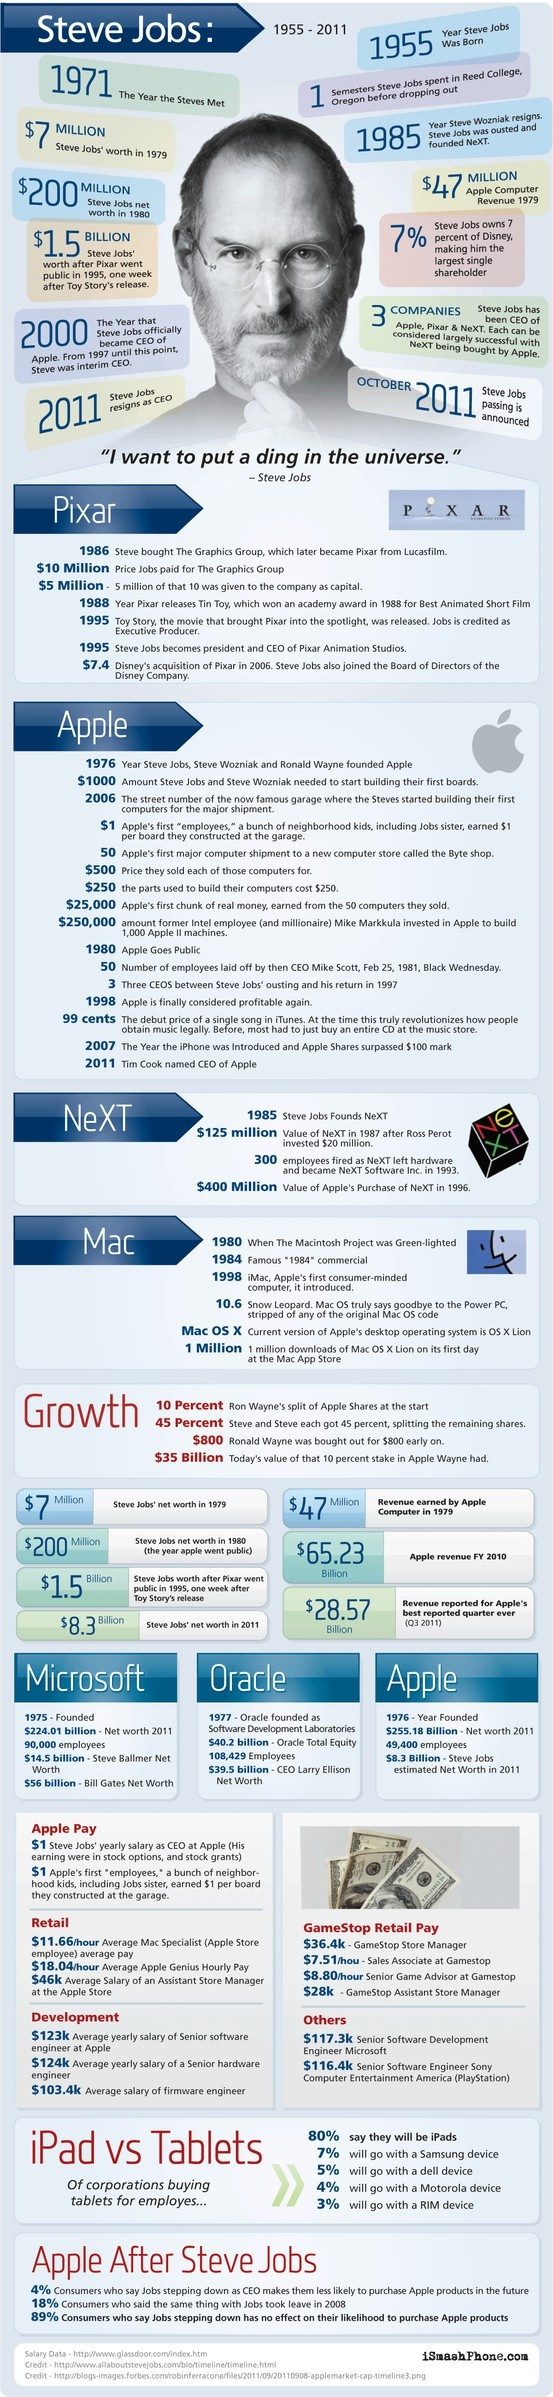 The Life of Steve Jobs – INFOGRAPHIC - From #Computer #Support #Specialist #Jobs